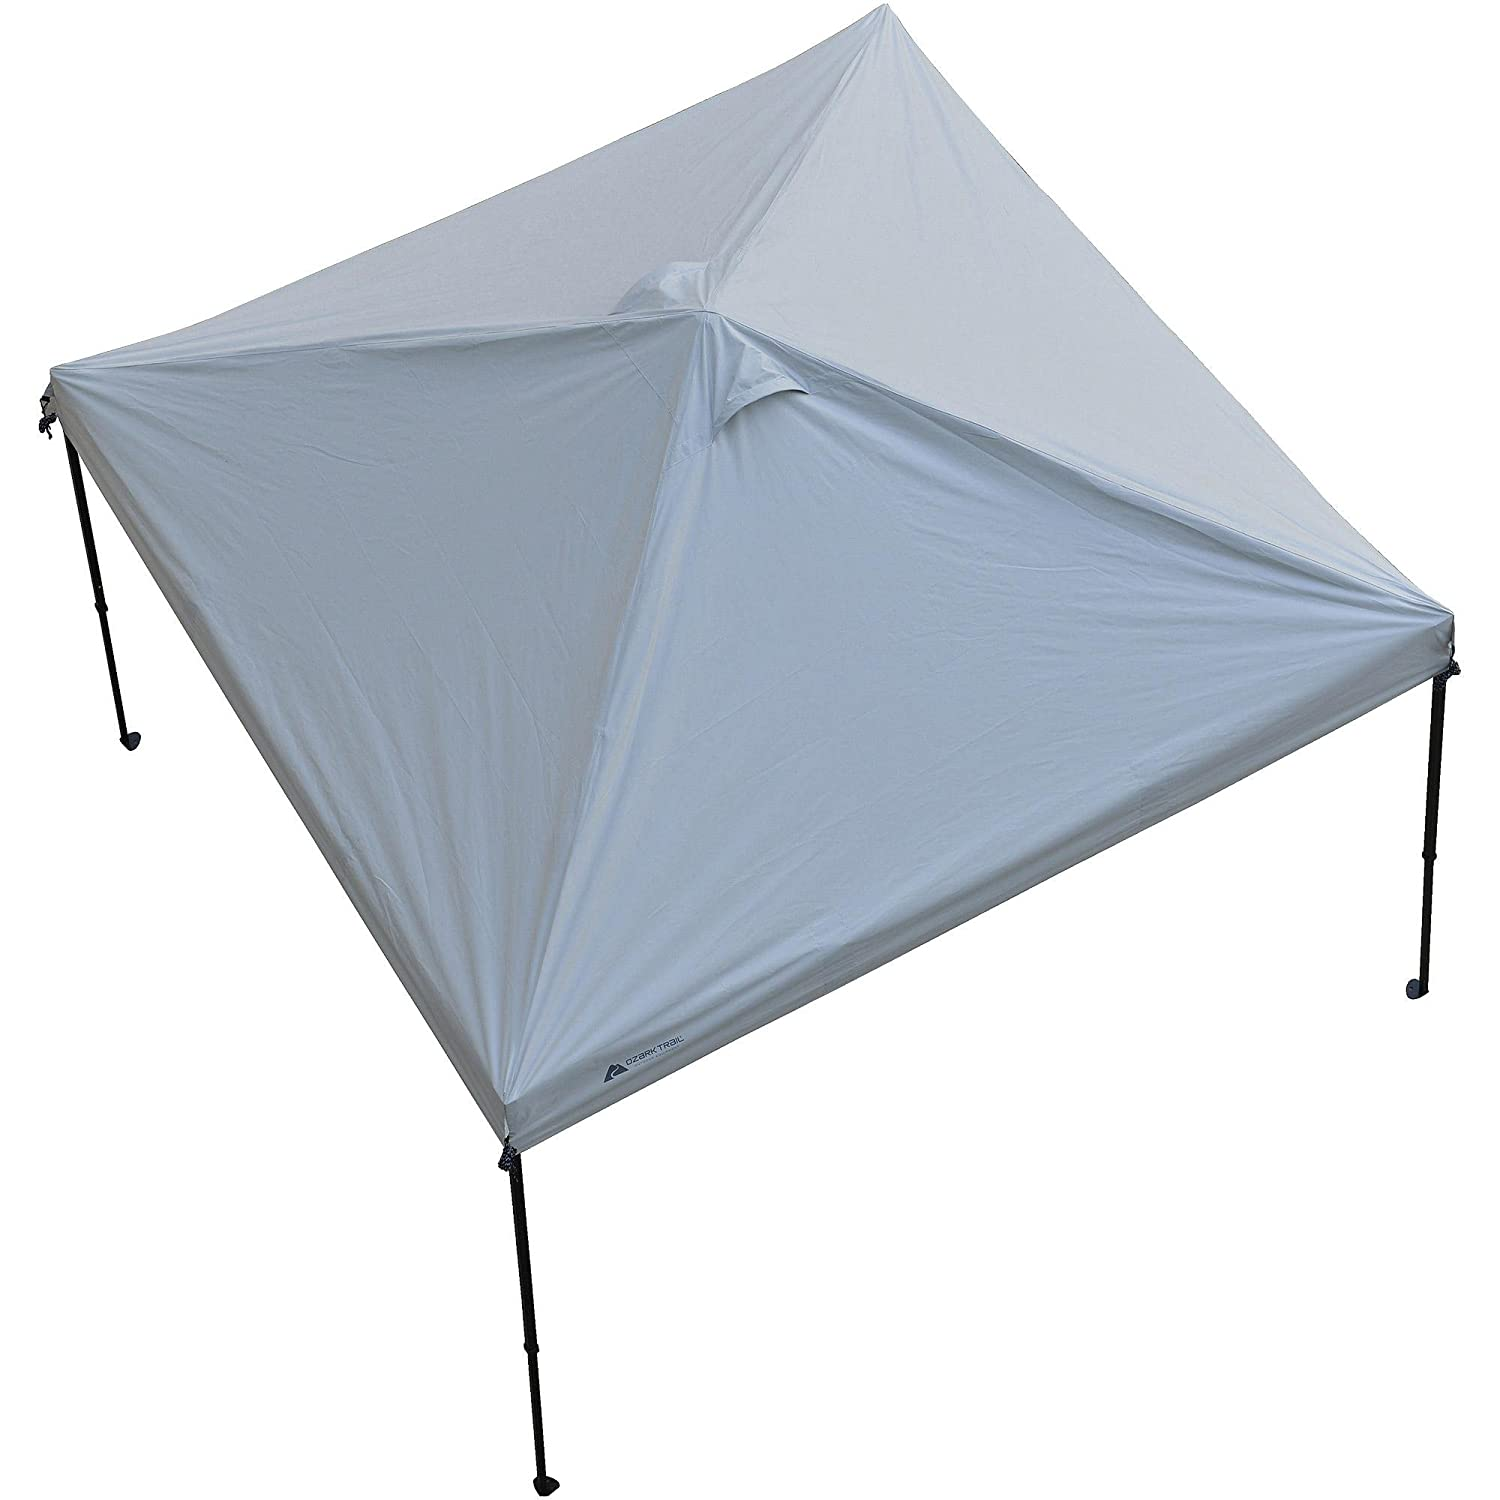 Amazon.com Ozark Trail 10ft x 10ft Gazebo Top (replacement top only Canopy frame not included) Garden u0026 Outdoor  sc 1 st  Amazon.com : ozark tent parts - memphite.com